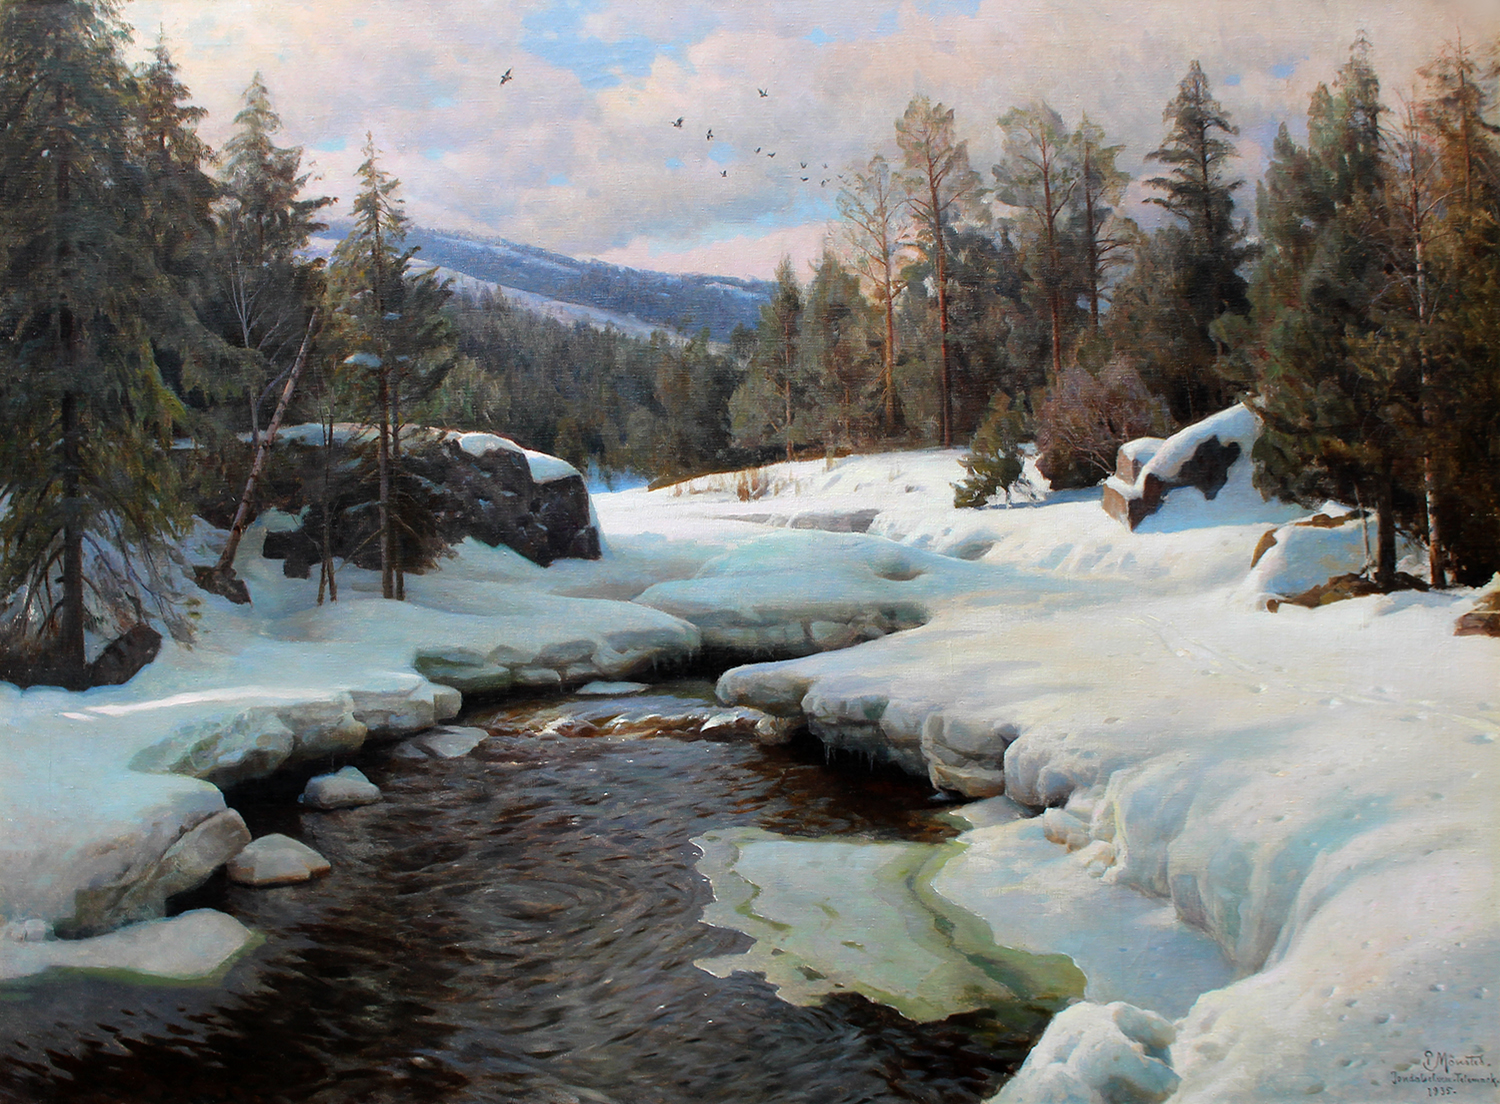 Peder M. Monsted (Danish 1859-1941) April Day With Spring Thaw, Jondalselven, Telemark